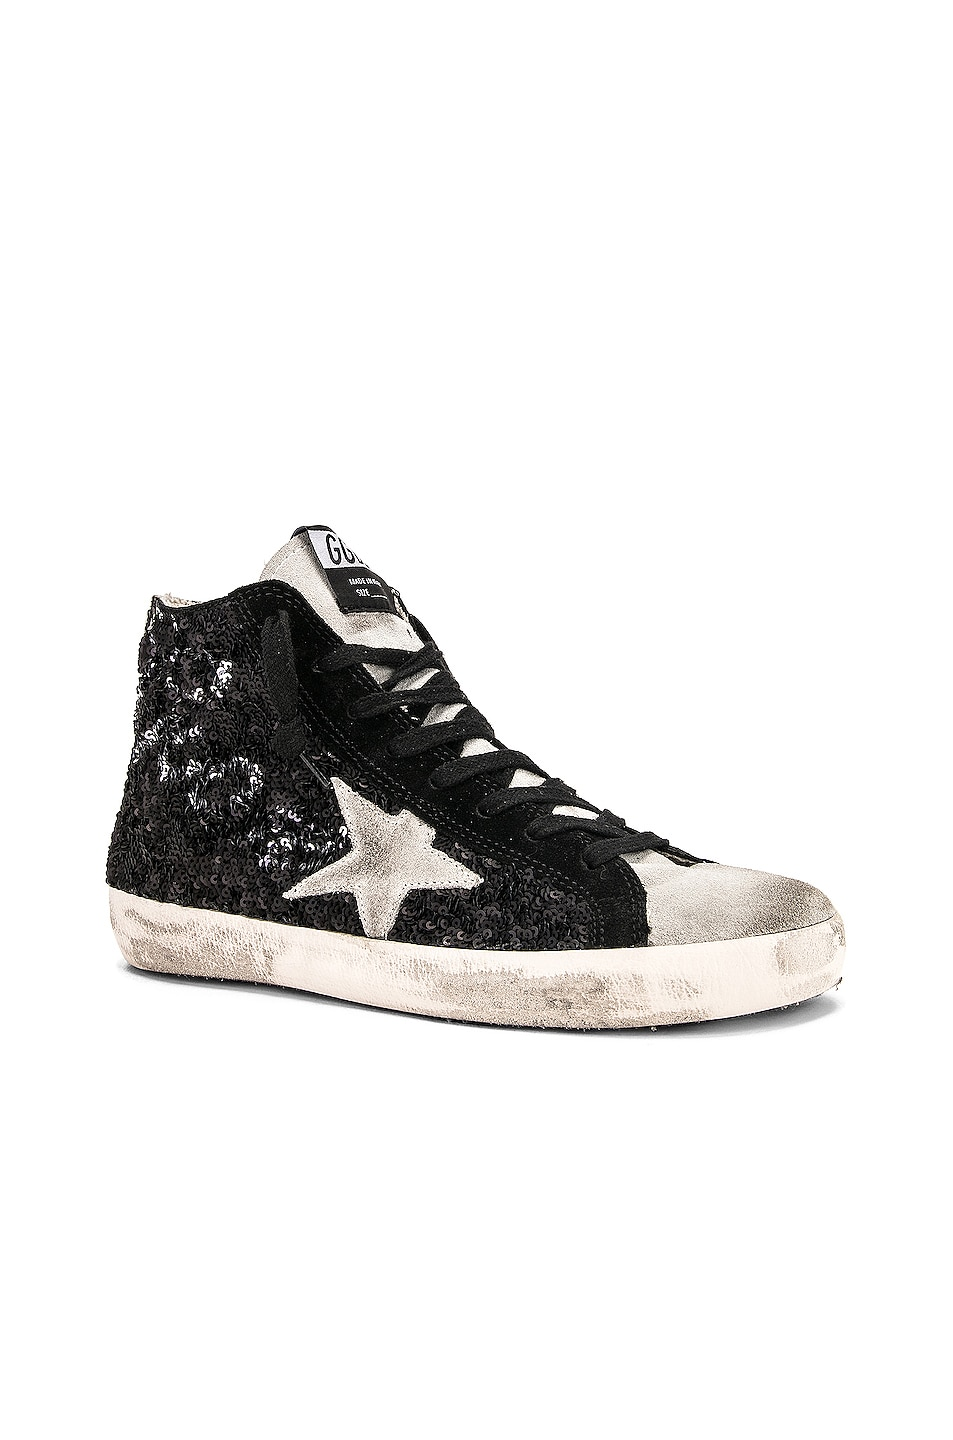 Image 2 of Golden Goose Francy Sneakers in Black Paillettes